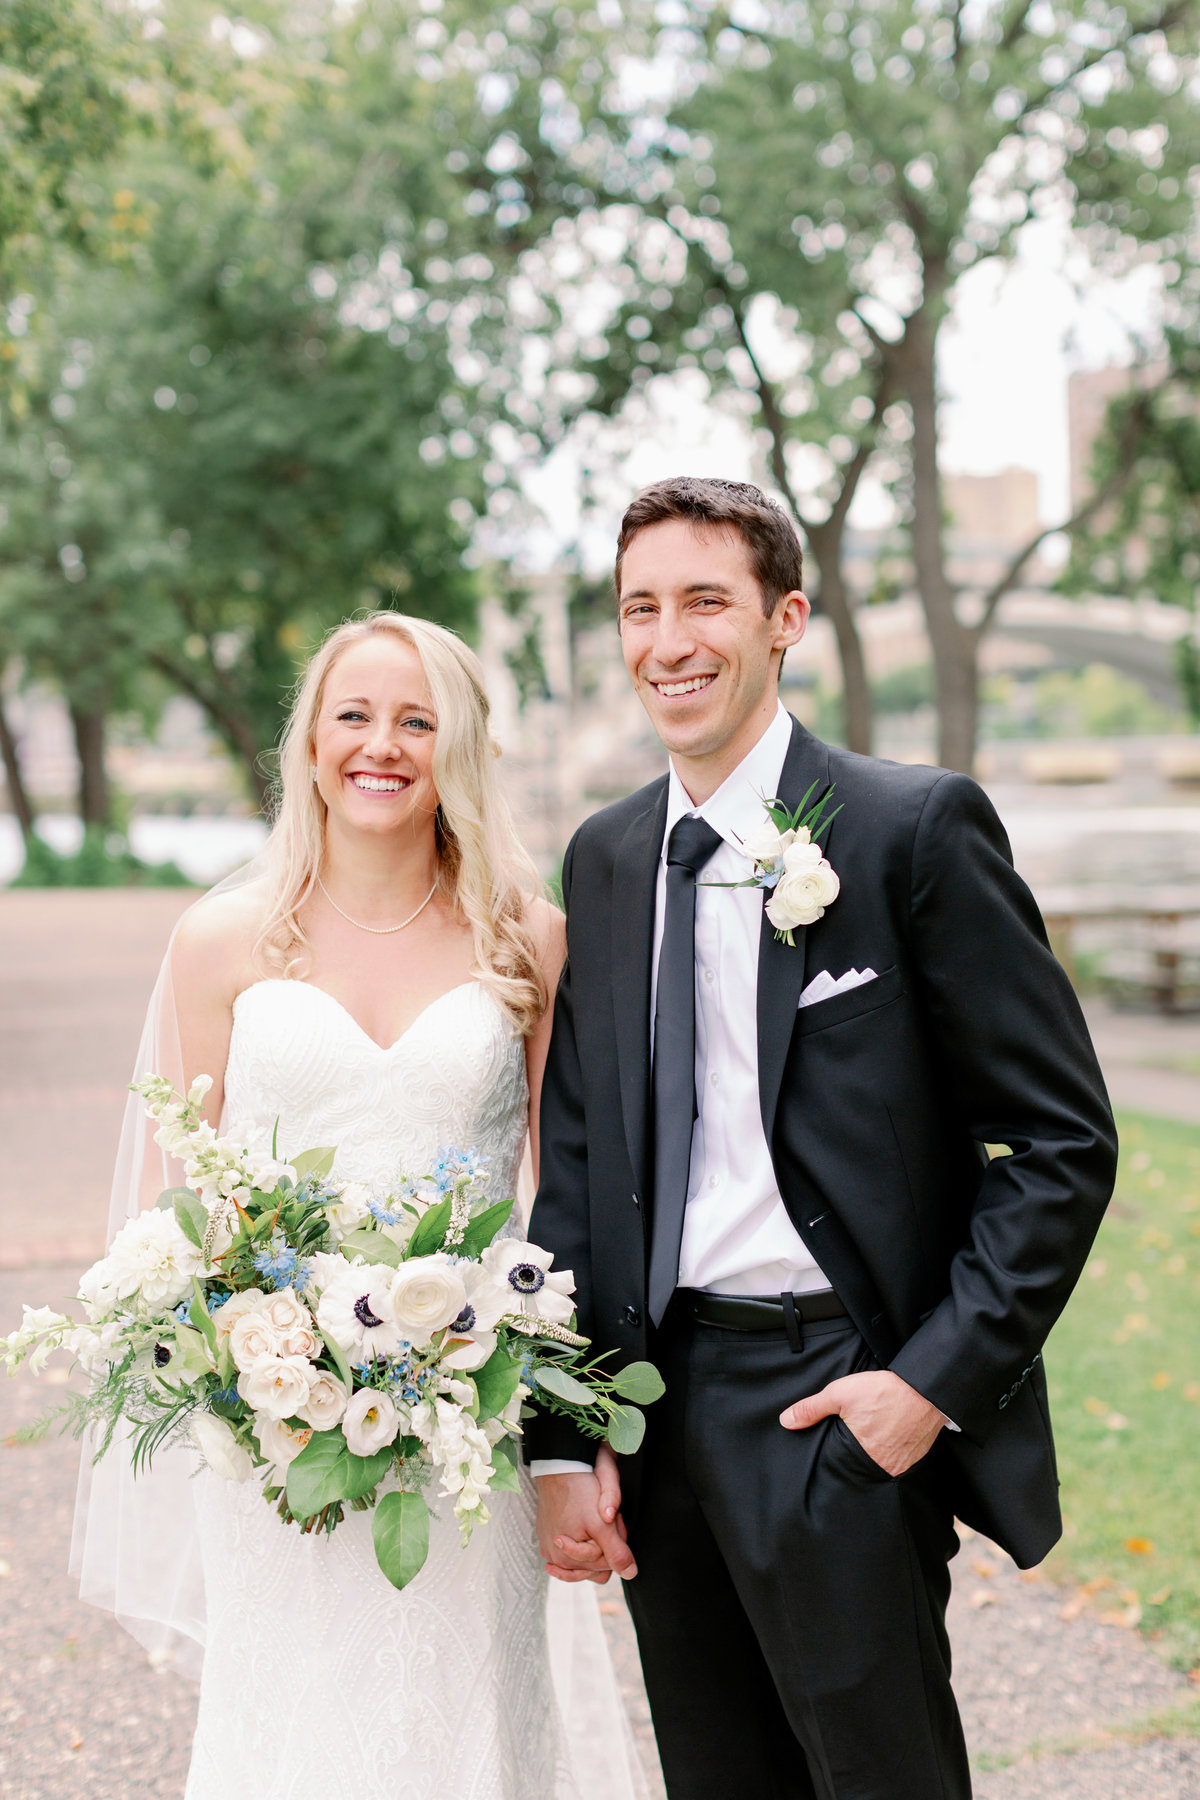 nicollet island pavilion wedding minneapolis studio fleurette